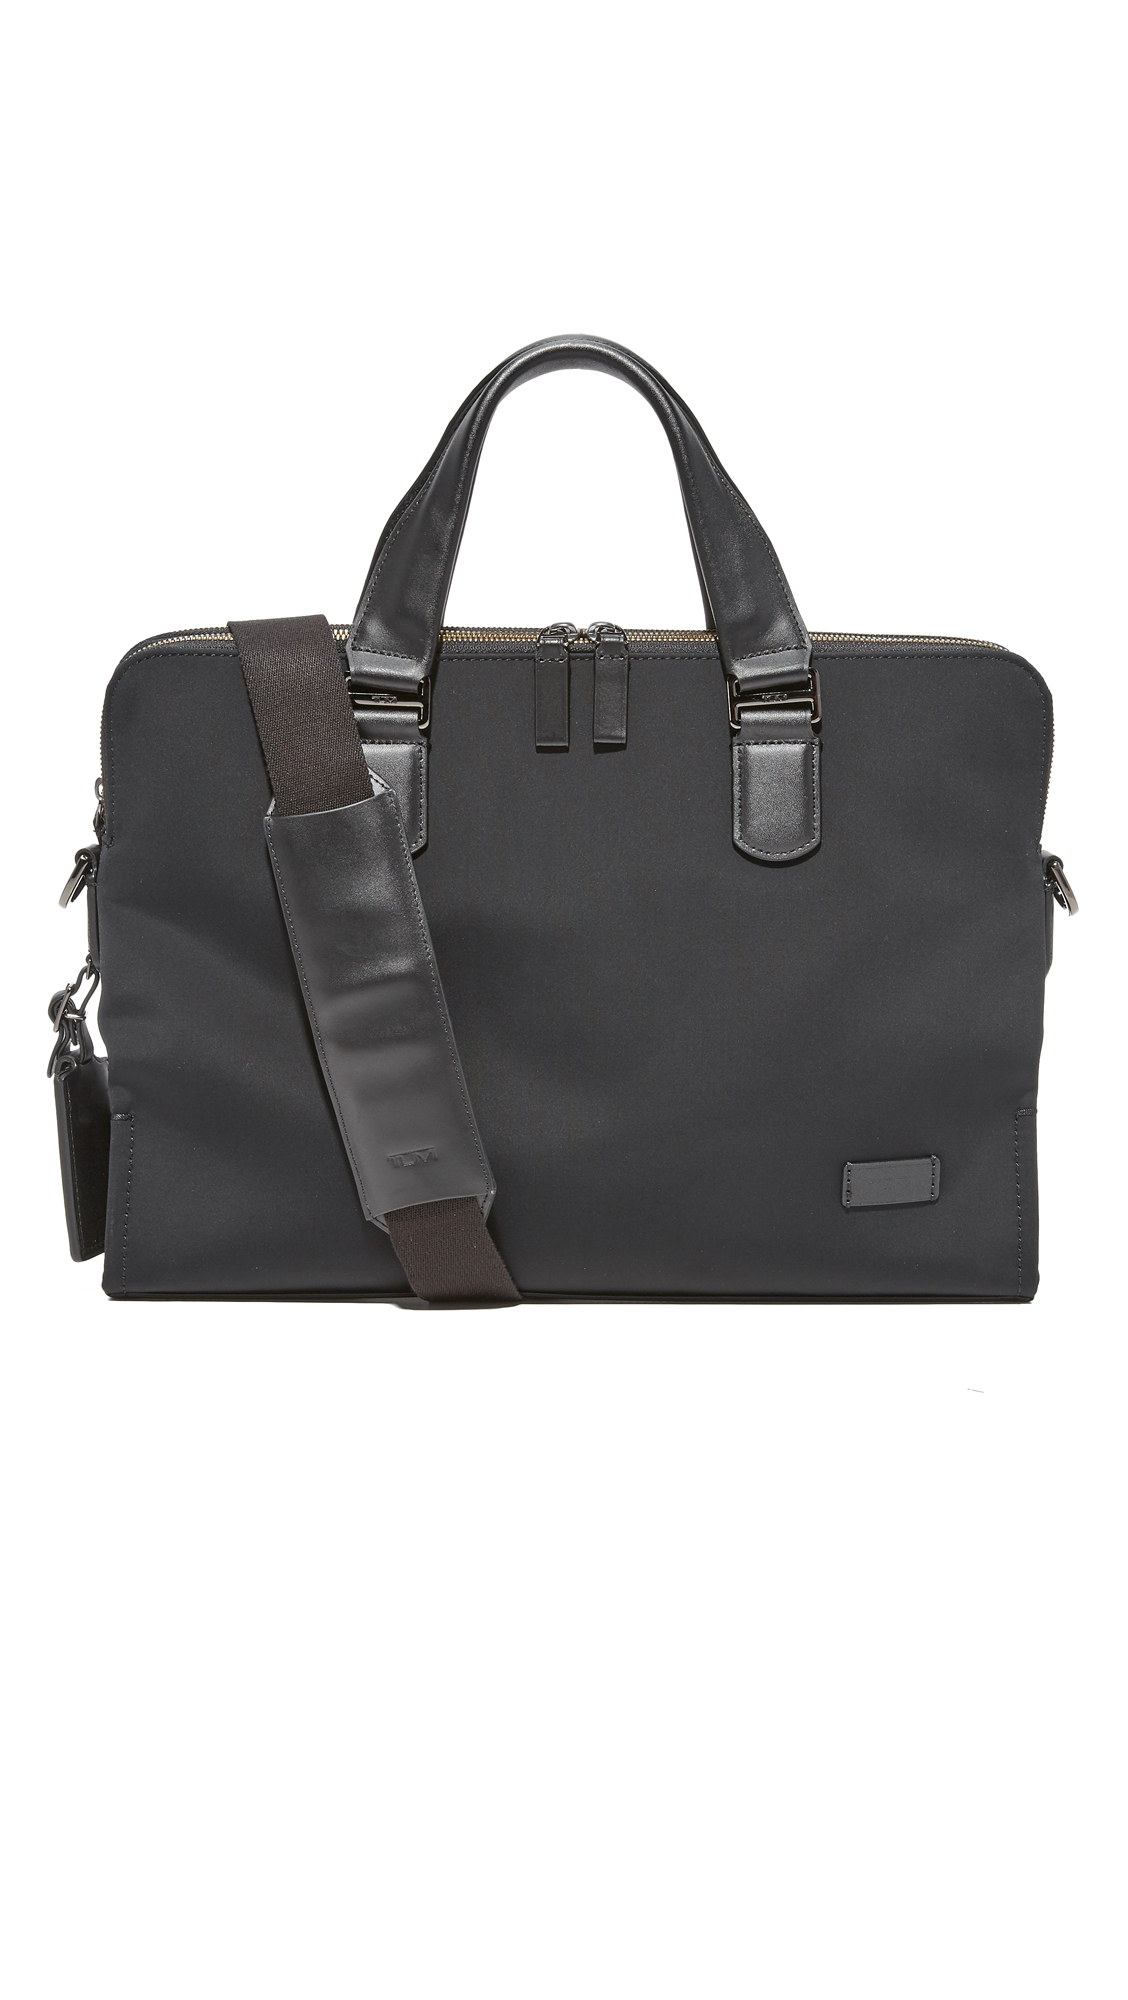 Tumi | EAST DANE Use code EDNC18 for 15% off